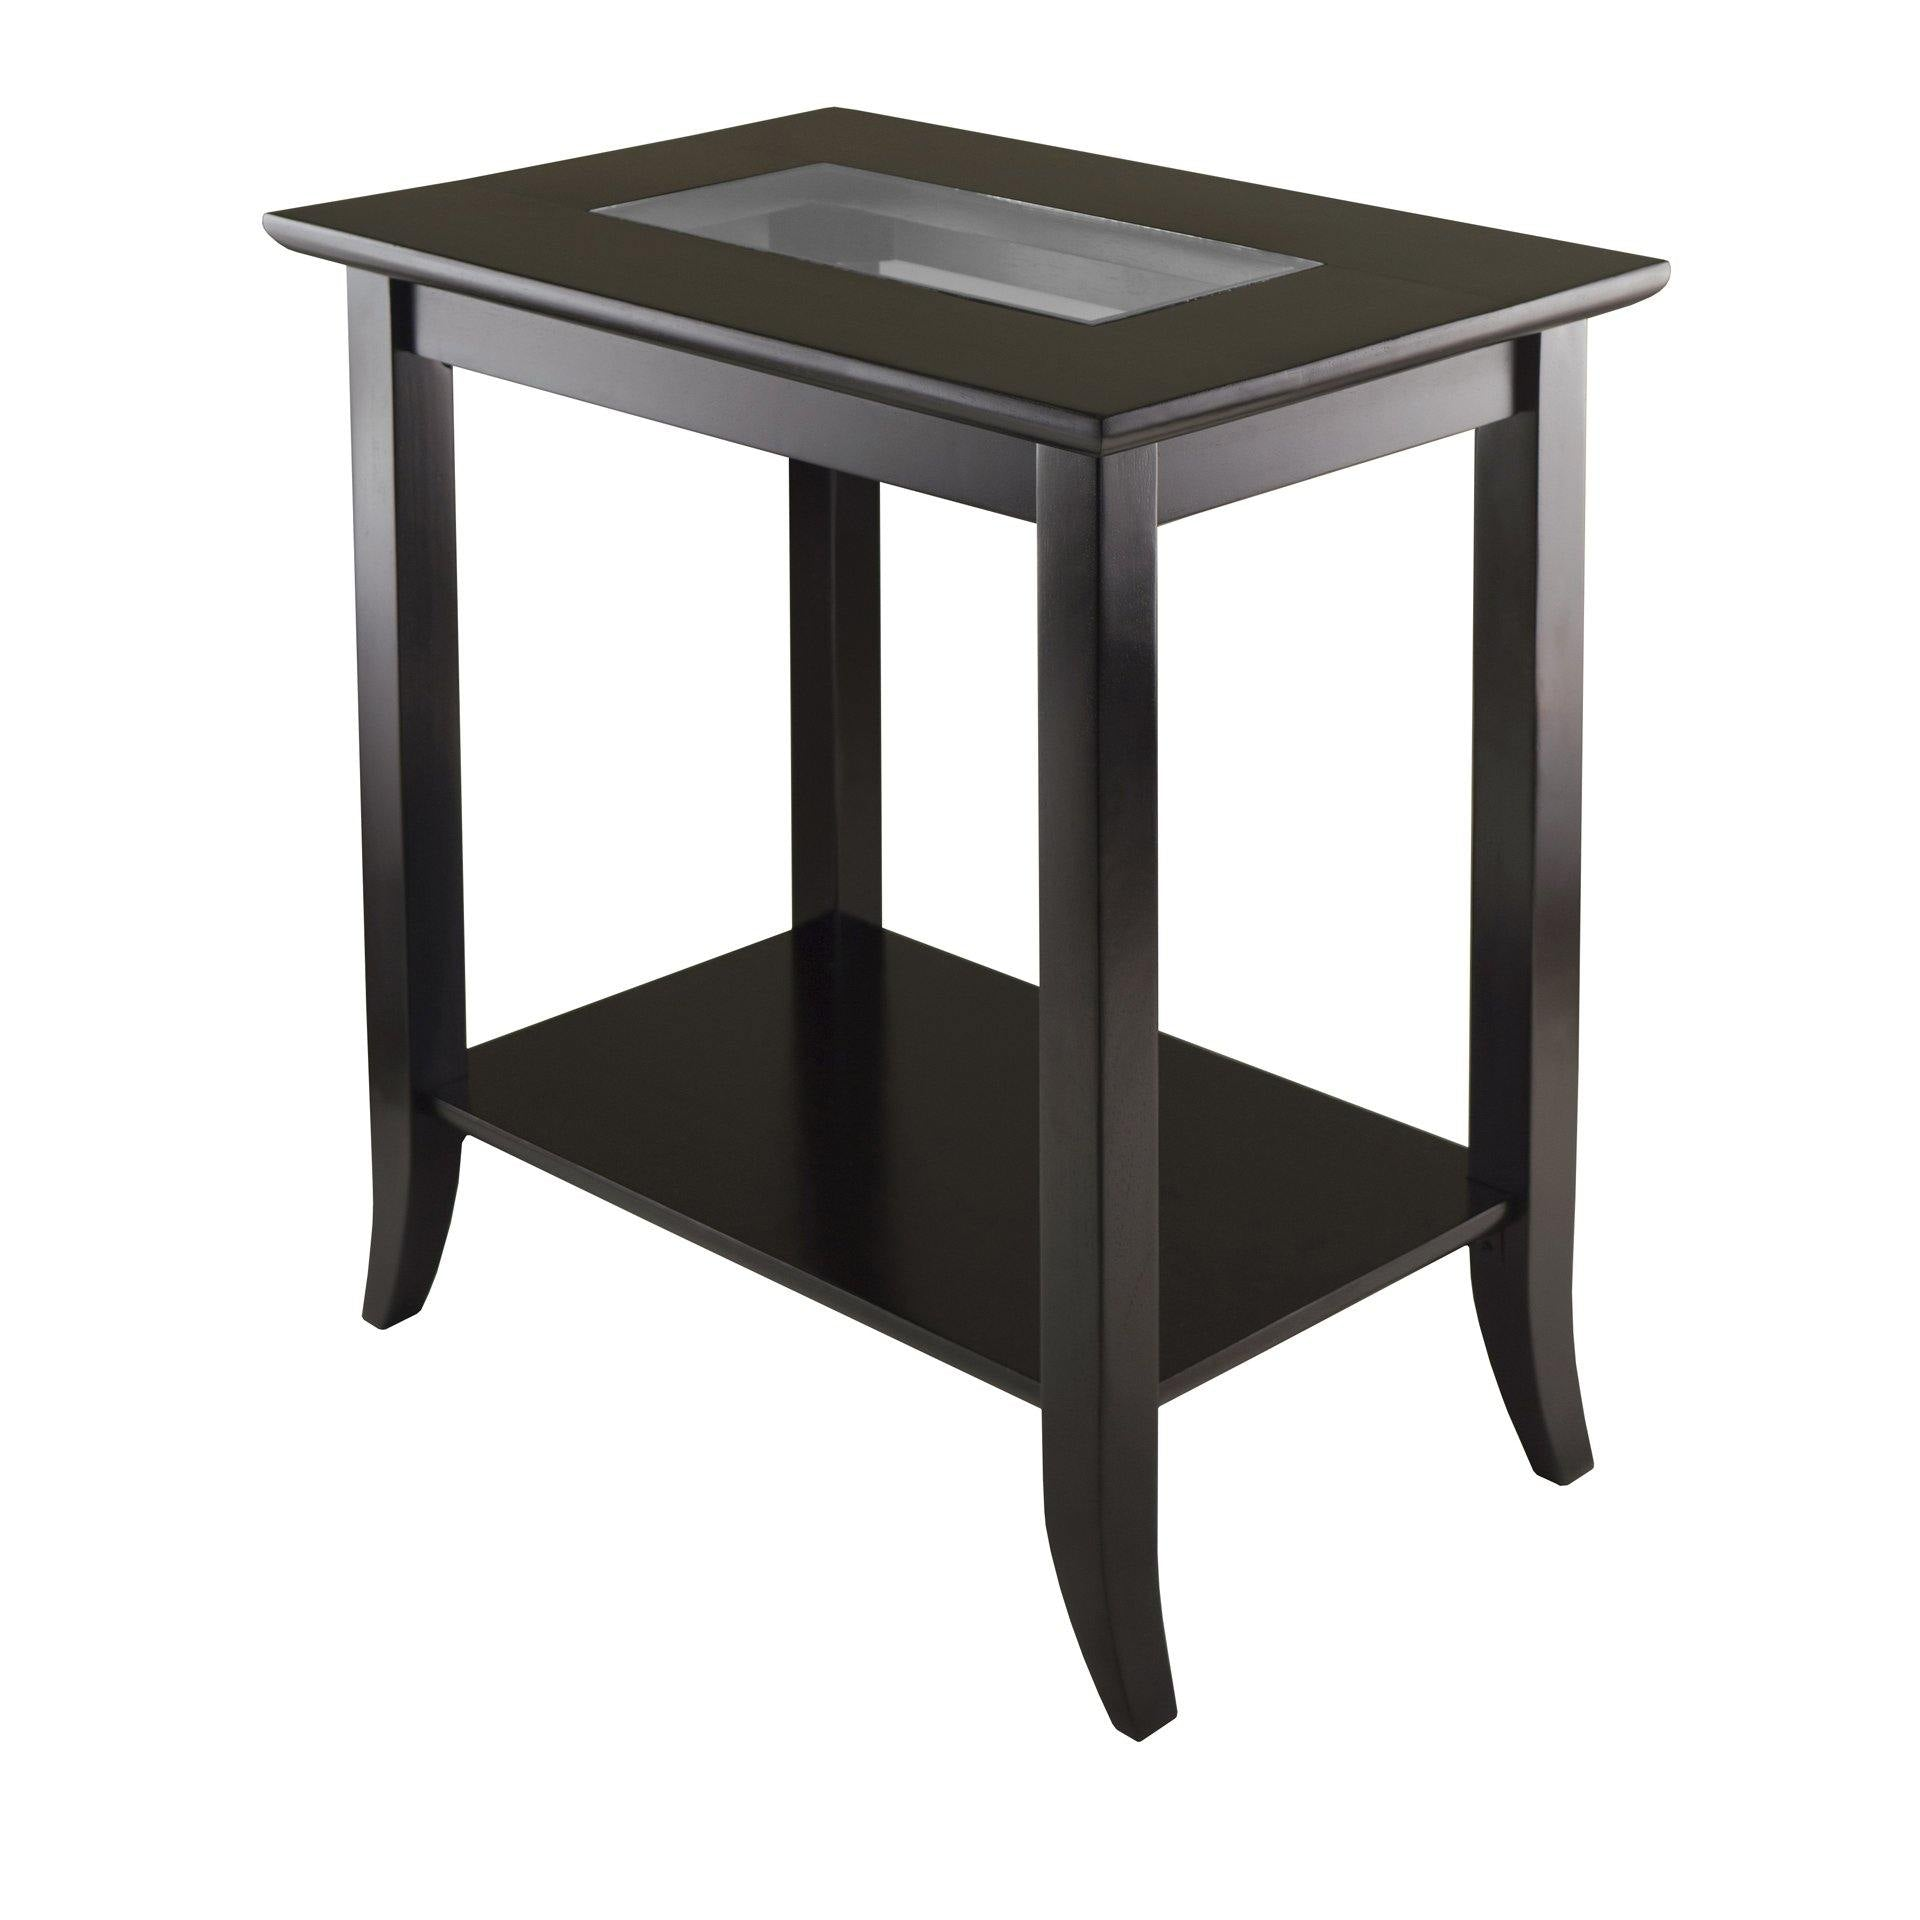 Genoa Rectangular End Table with Glass Top and shelf - My USA Furniture